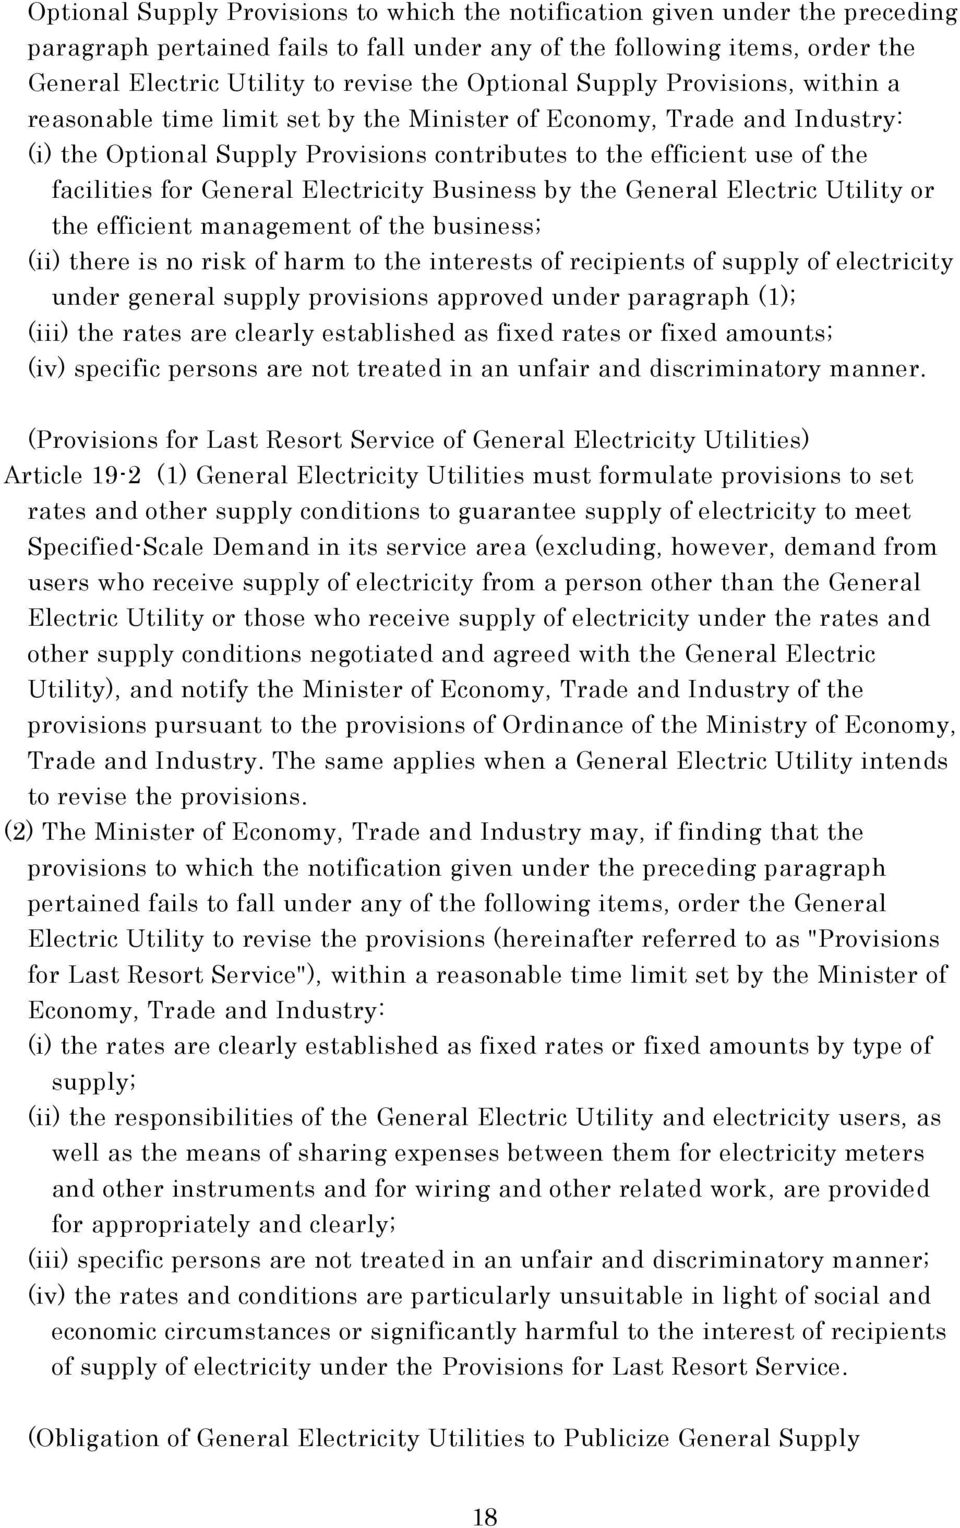 for General Electricity Business by the General Electric Utility or the efficient management of the business; (ii) there is no risk of harm to the interests of recipients of supply of electricity